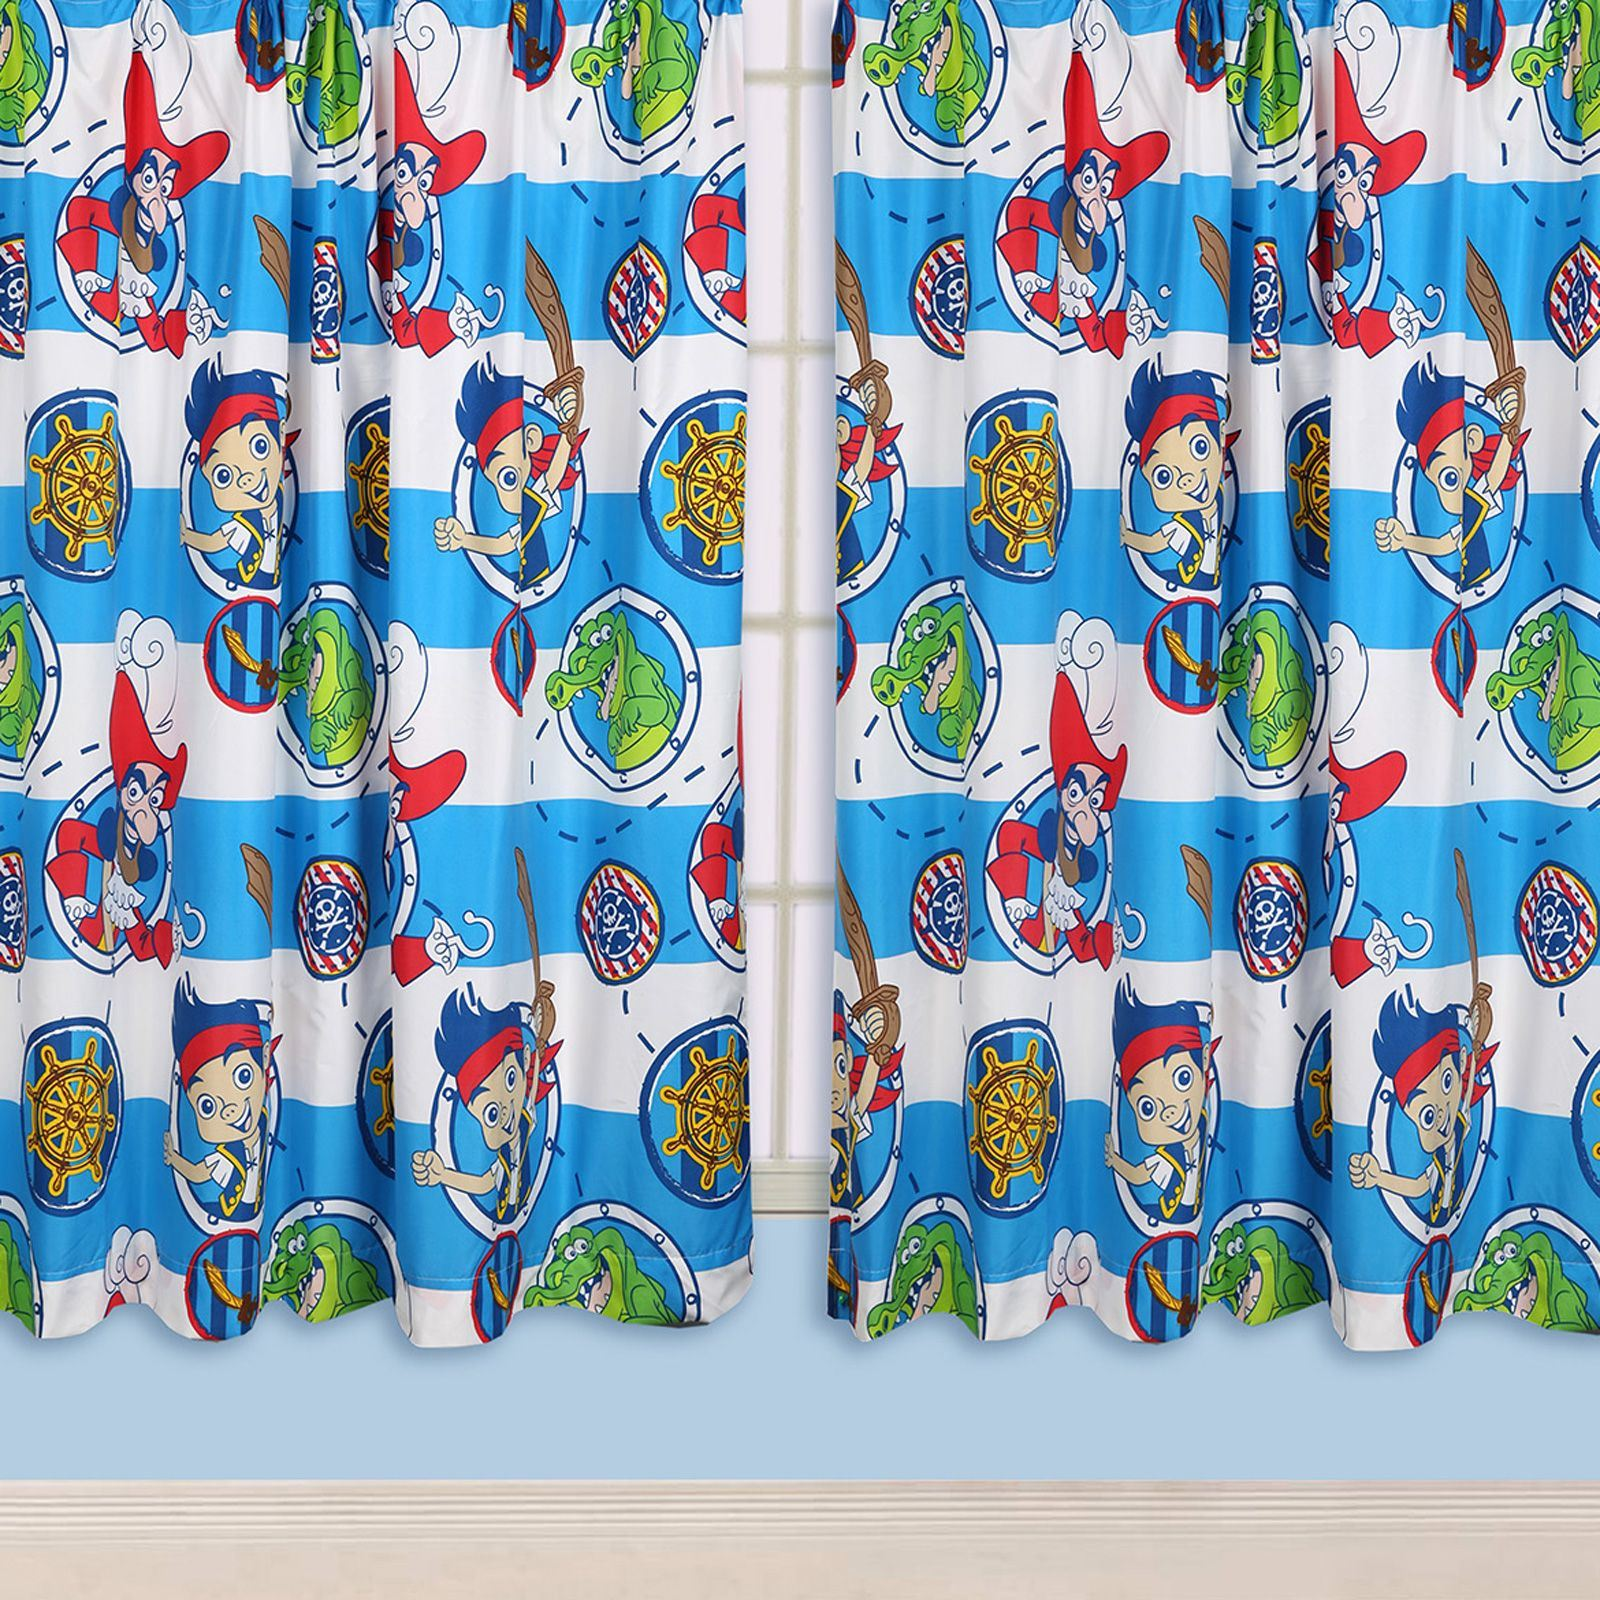 Details about kids disney and character curtains 54 72 inch drop